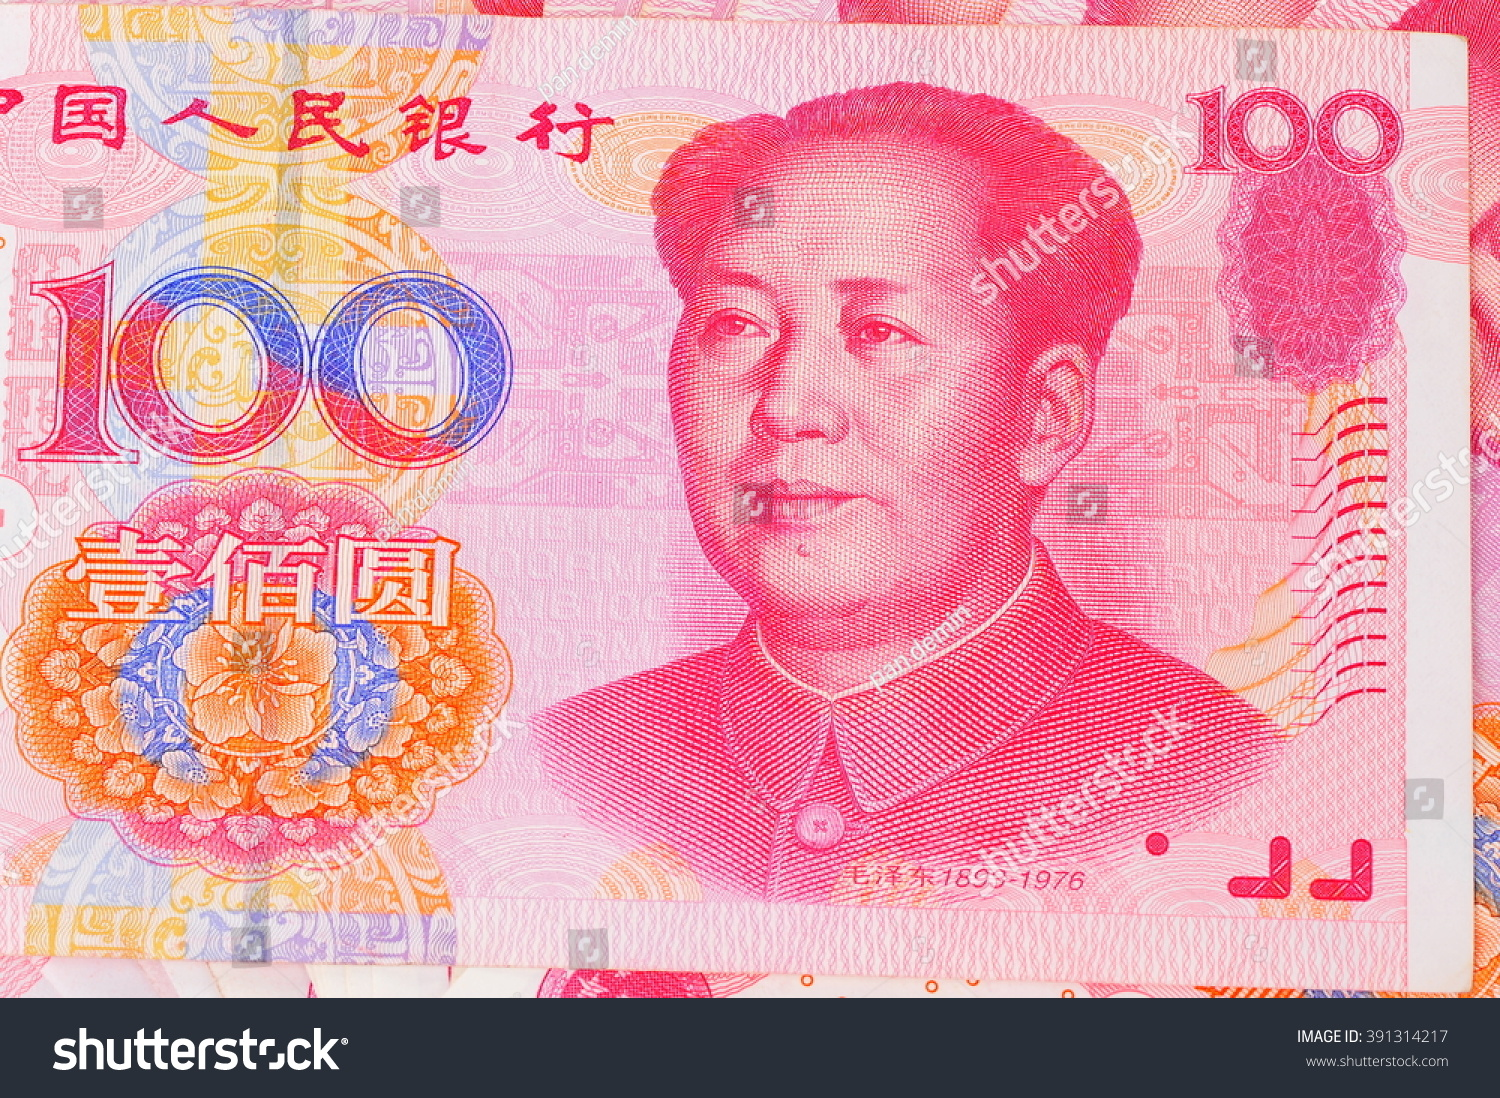 Rmb Modulhaus Preise China 39s Currency The Yuan Stock Foto 391314217 Shutterstock